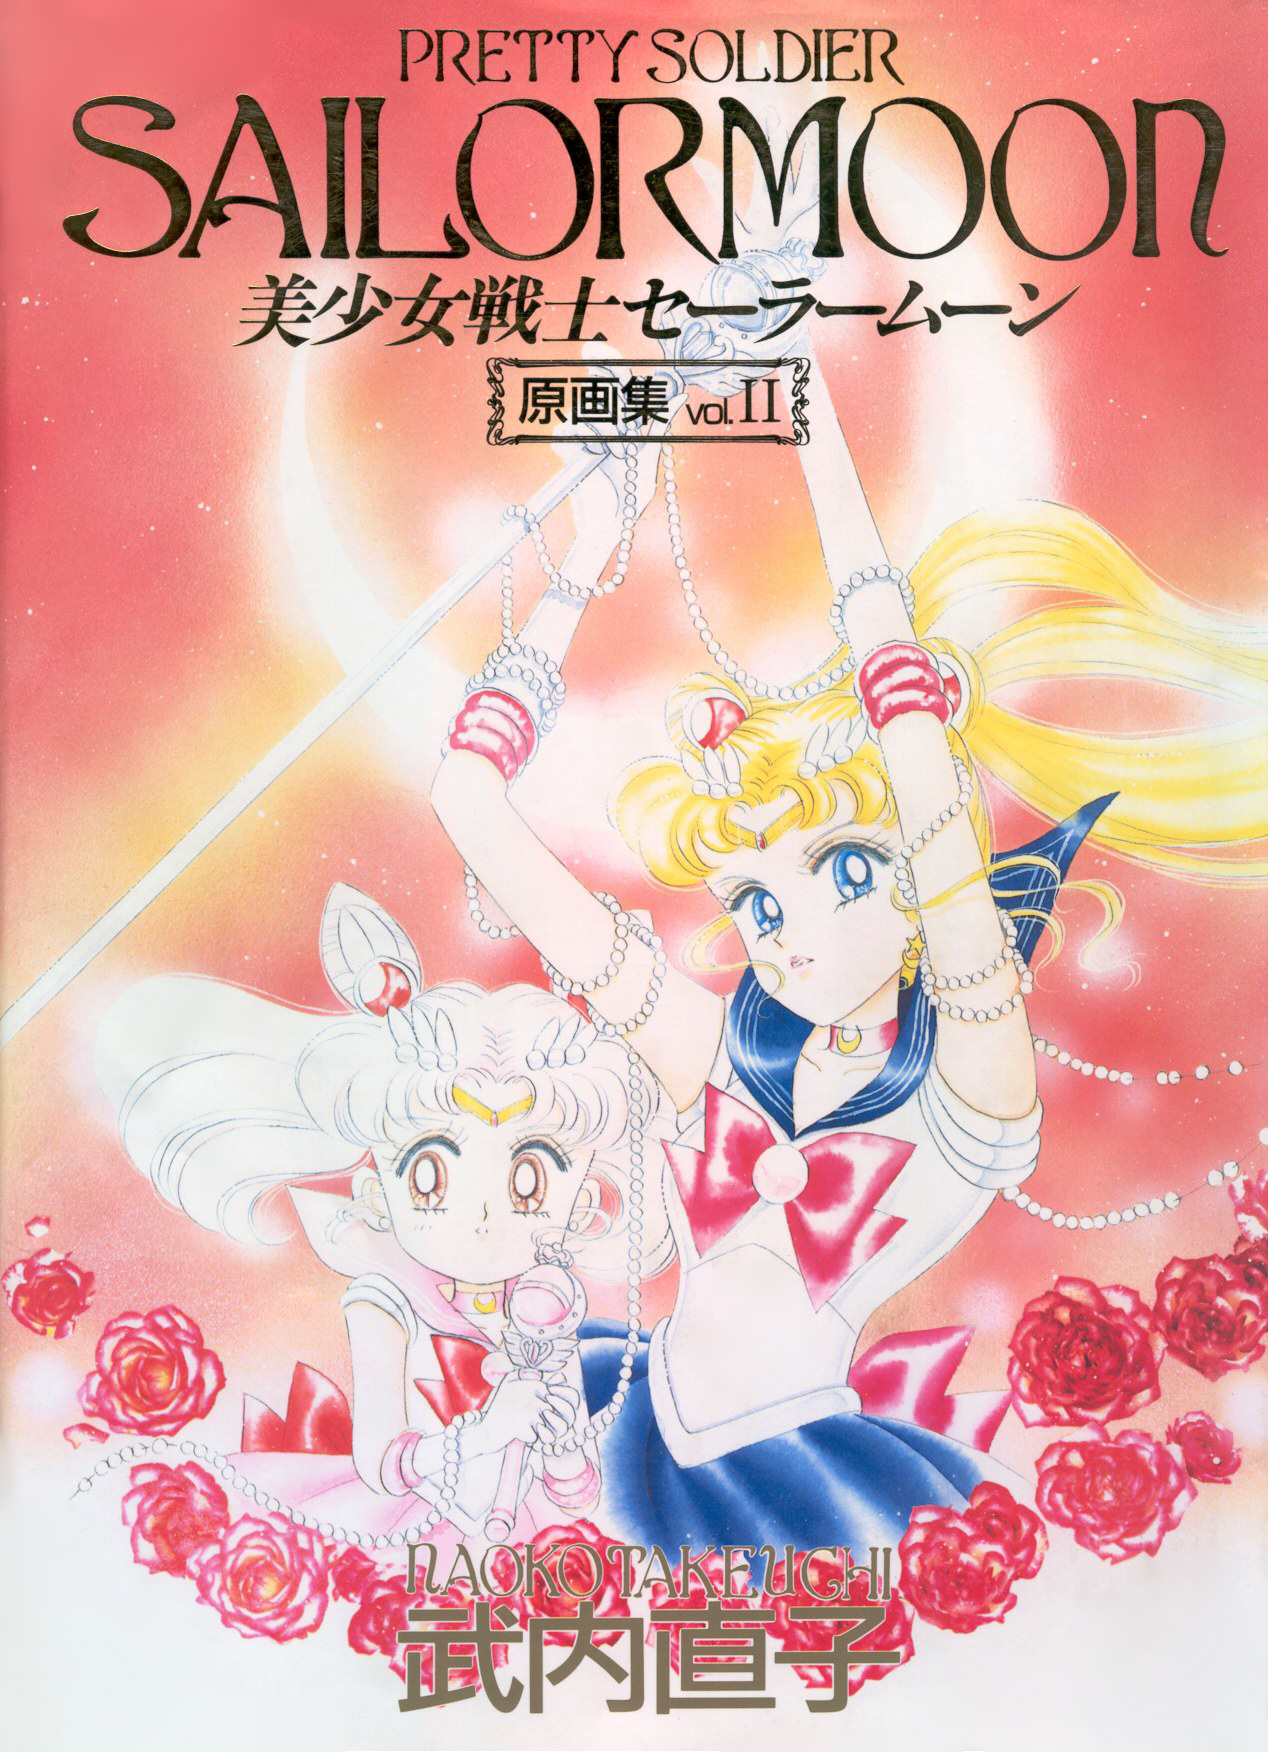 Pretty Soldier Sailor Moon The Original Picture Collection Vol.2 (artbook)